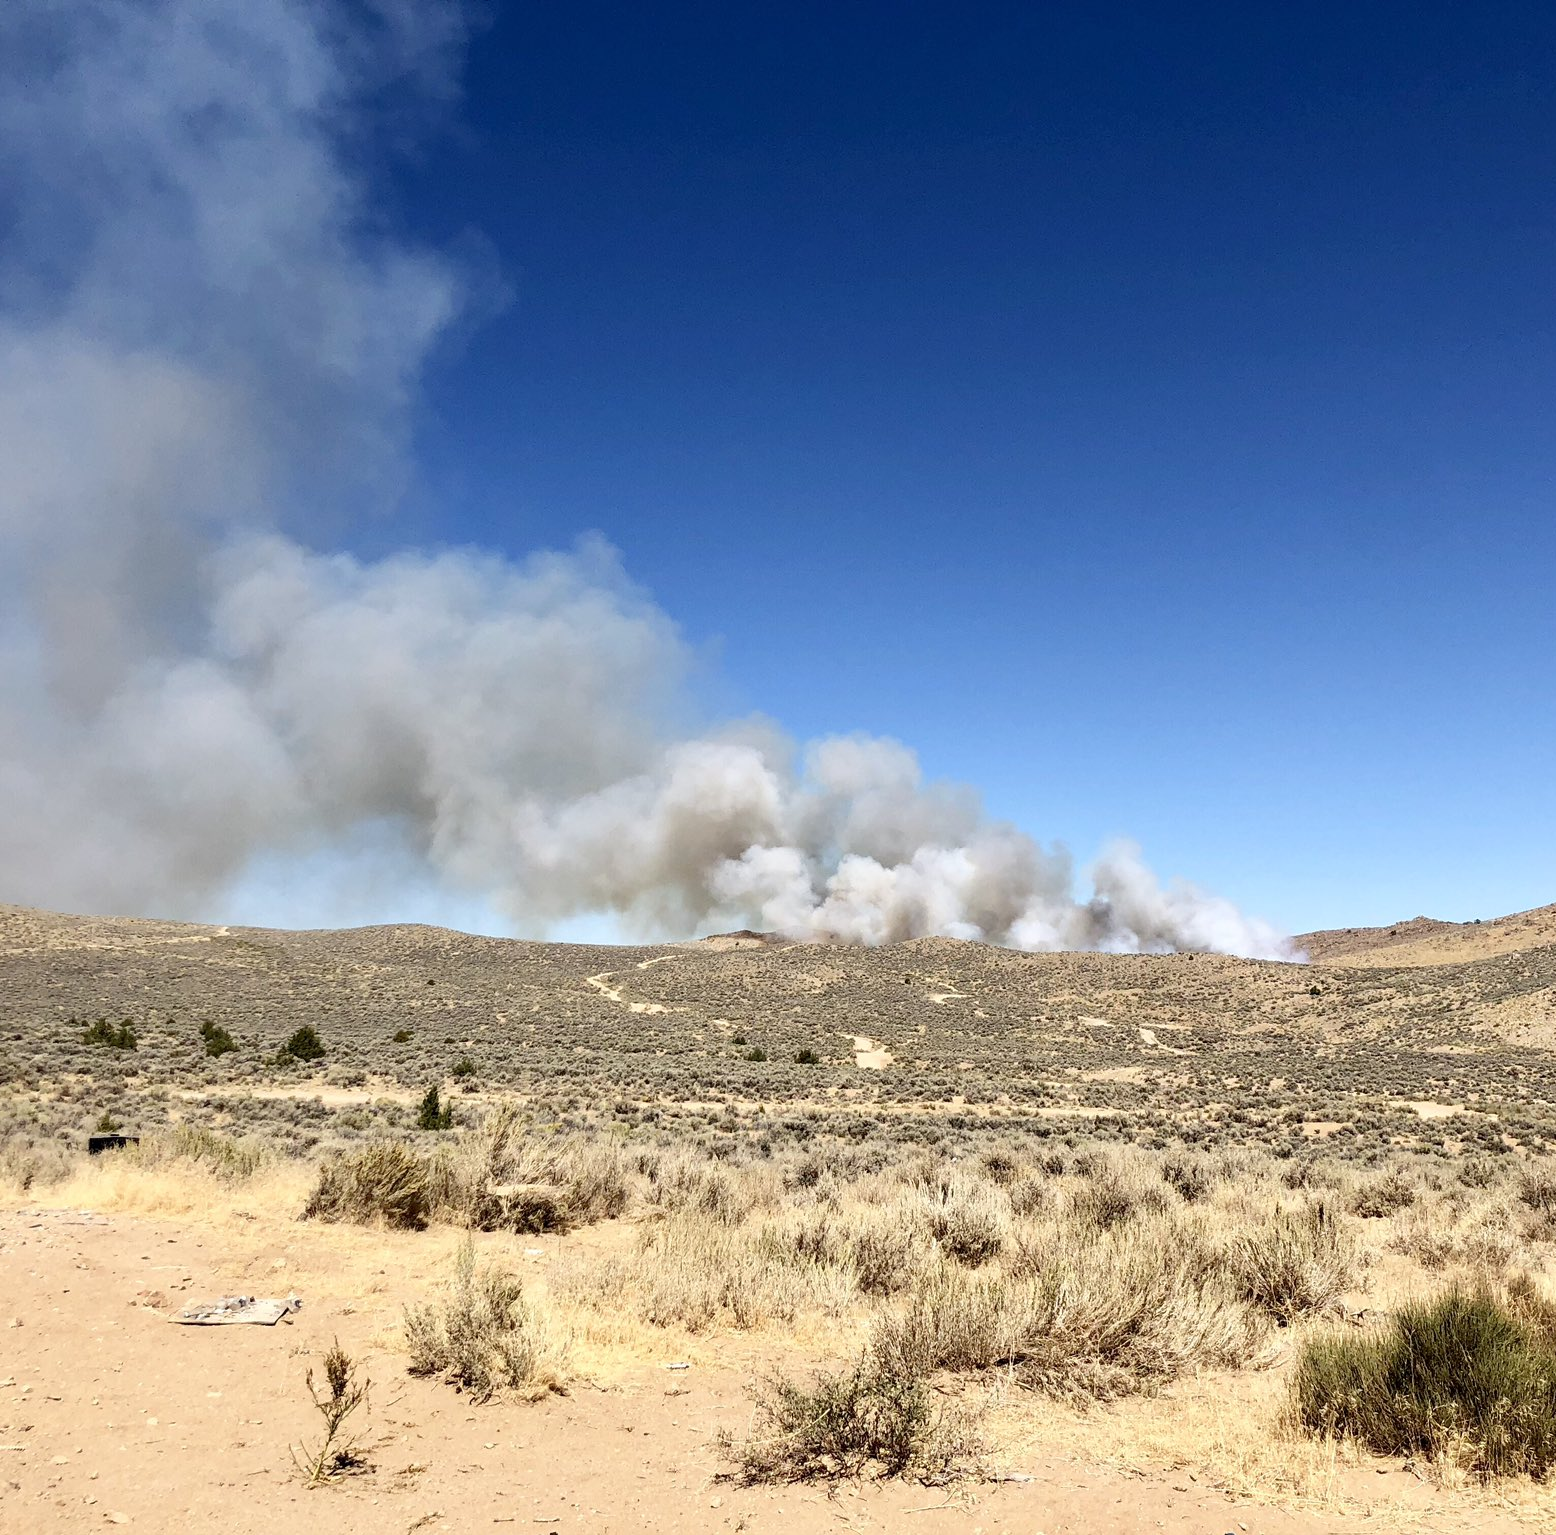 BLM: Chimney Fire spreads to 120 acres in Sun Valley